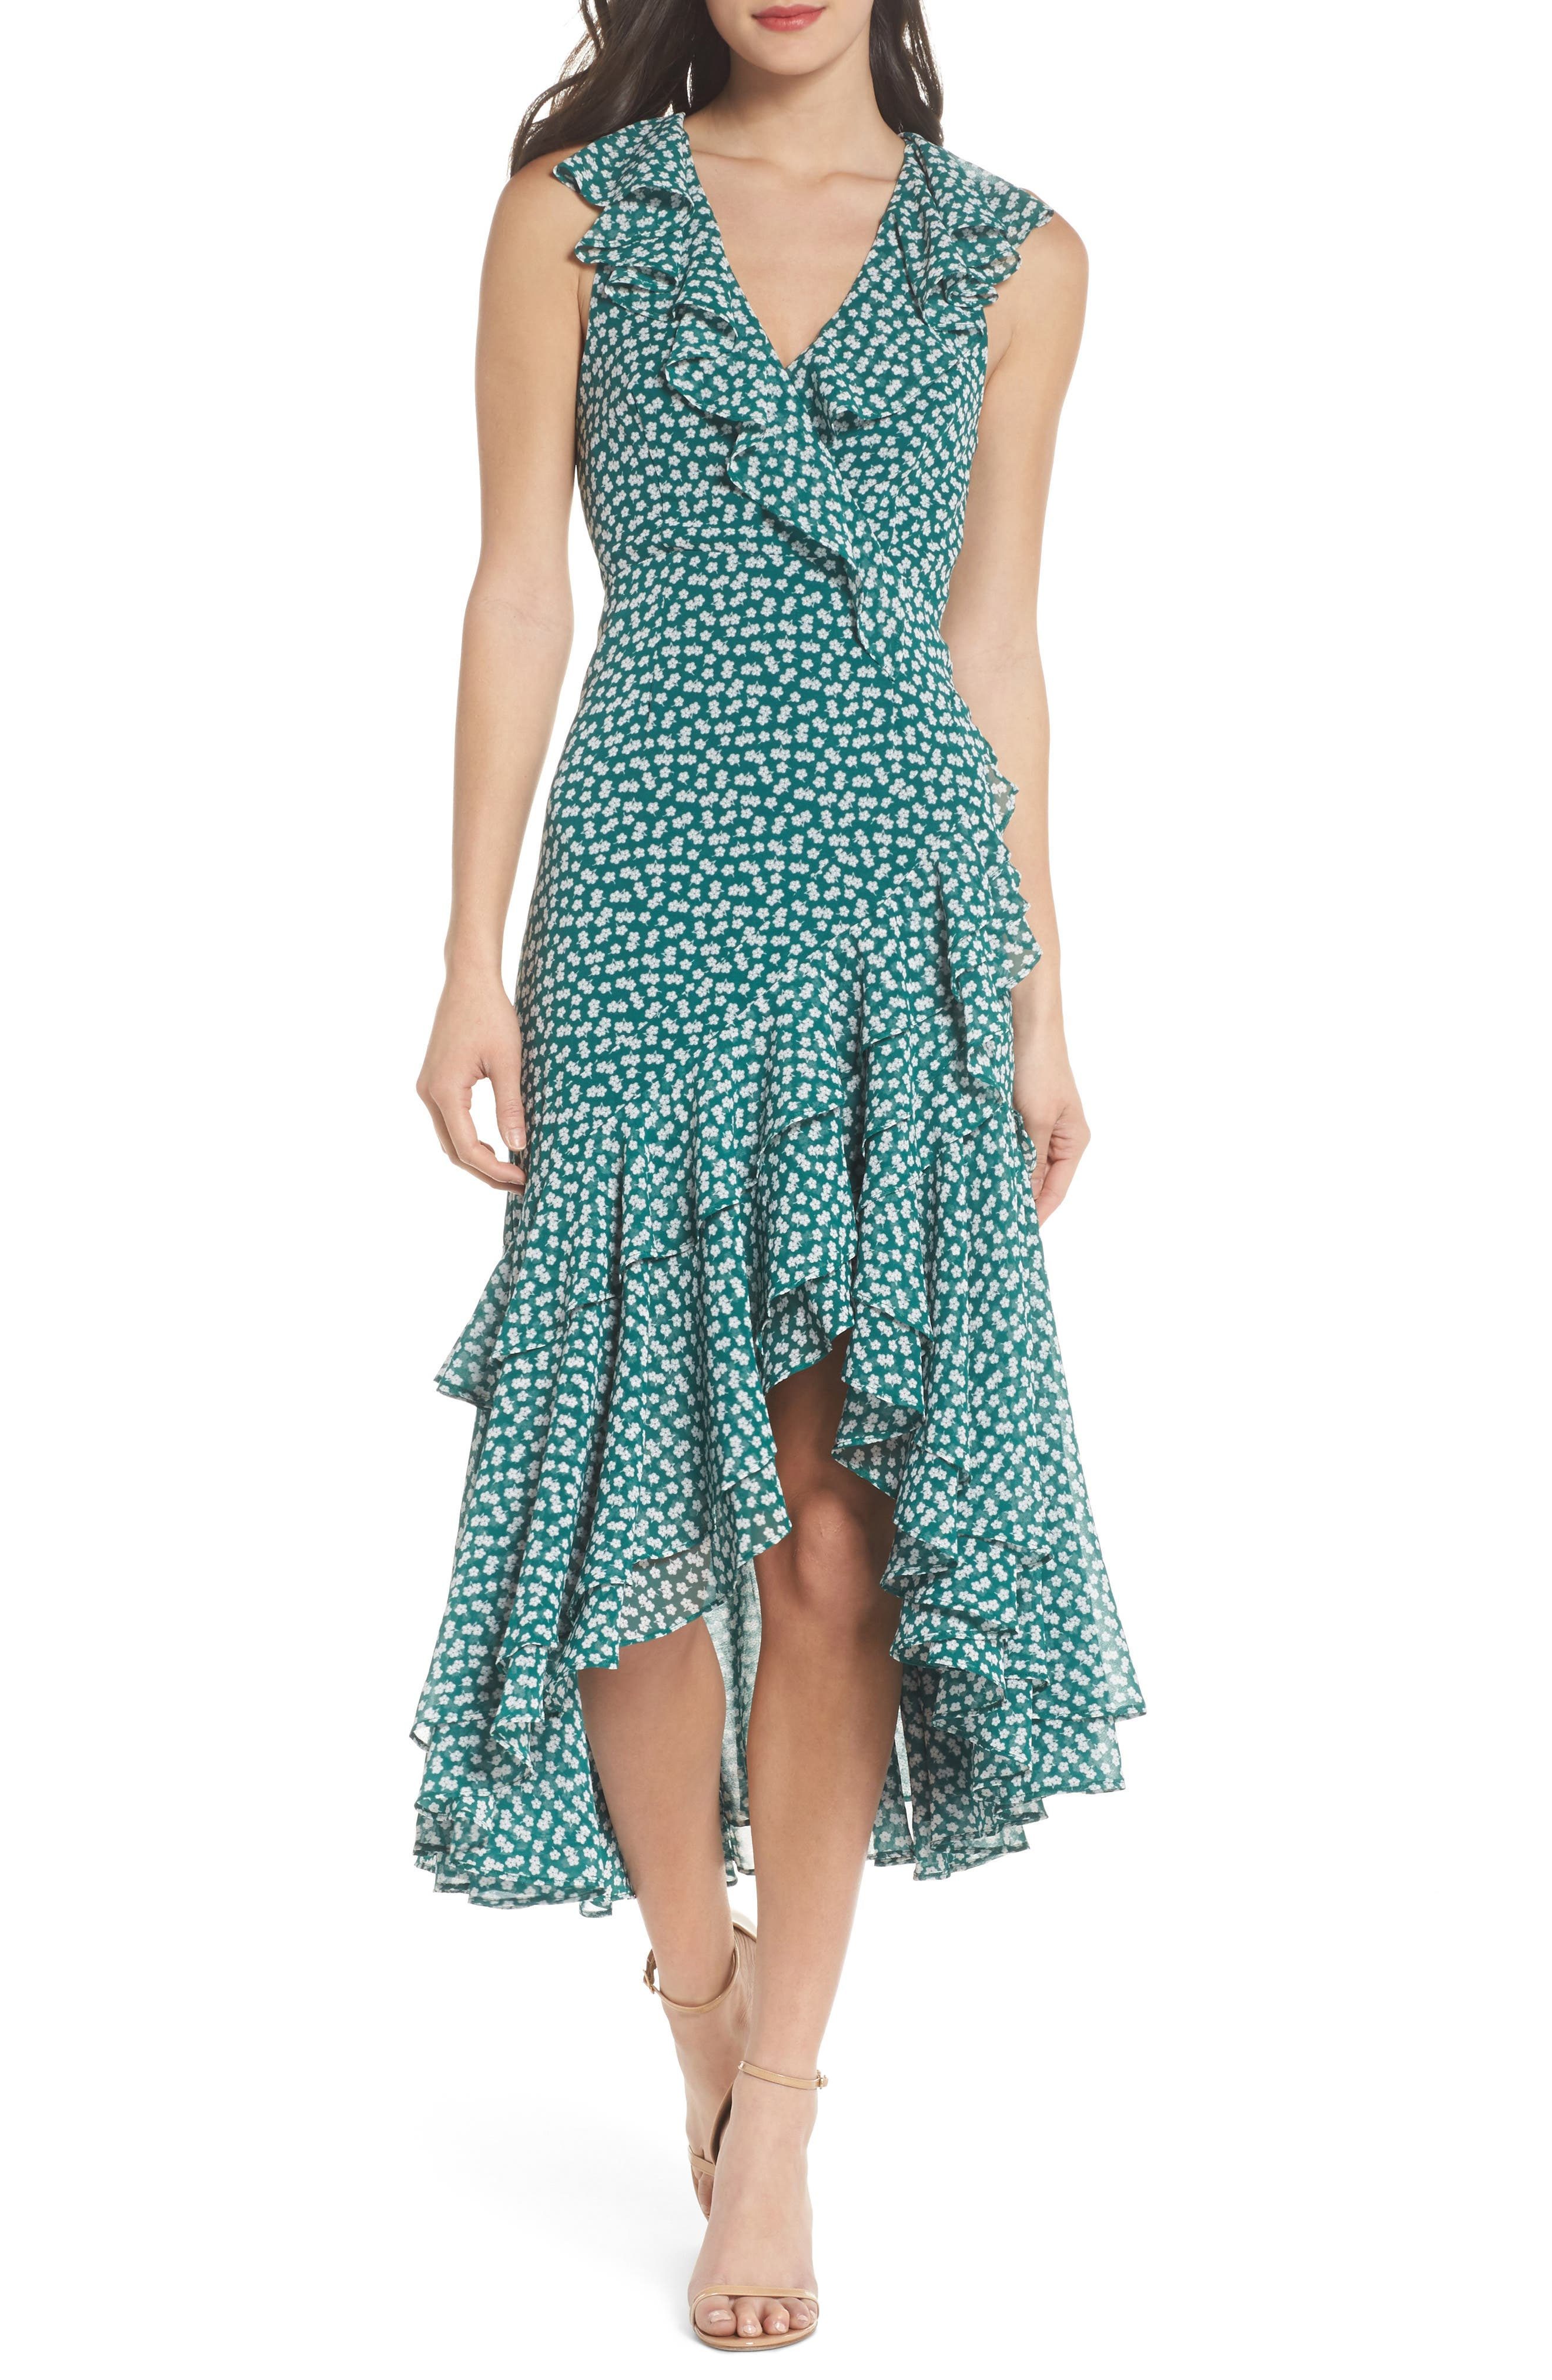 Be About You Ruffle Midi Dress,                         Main,                         color, 303